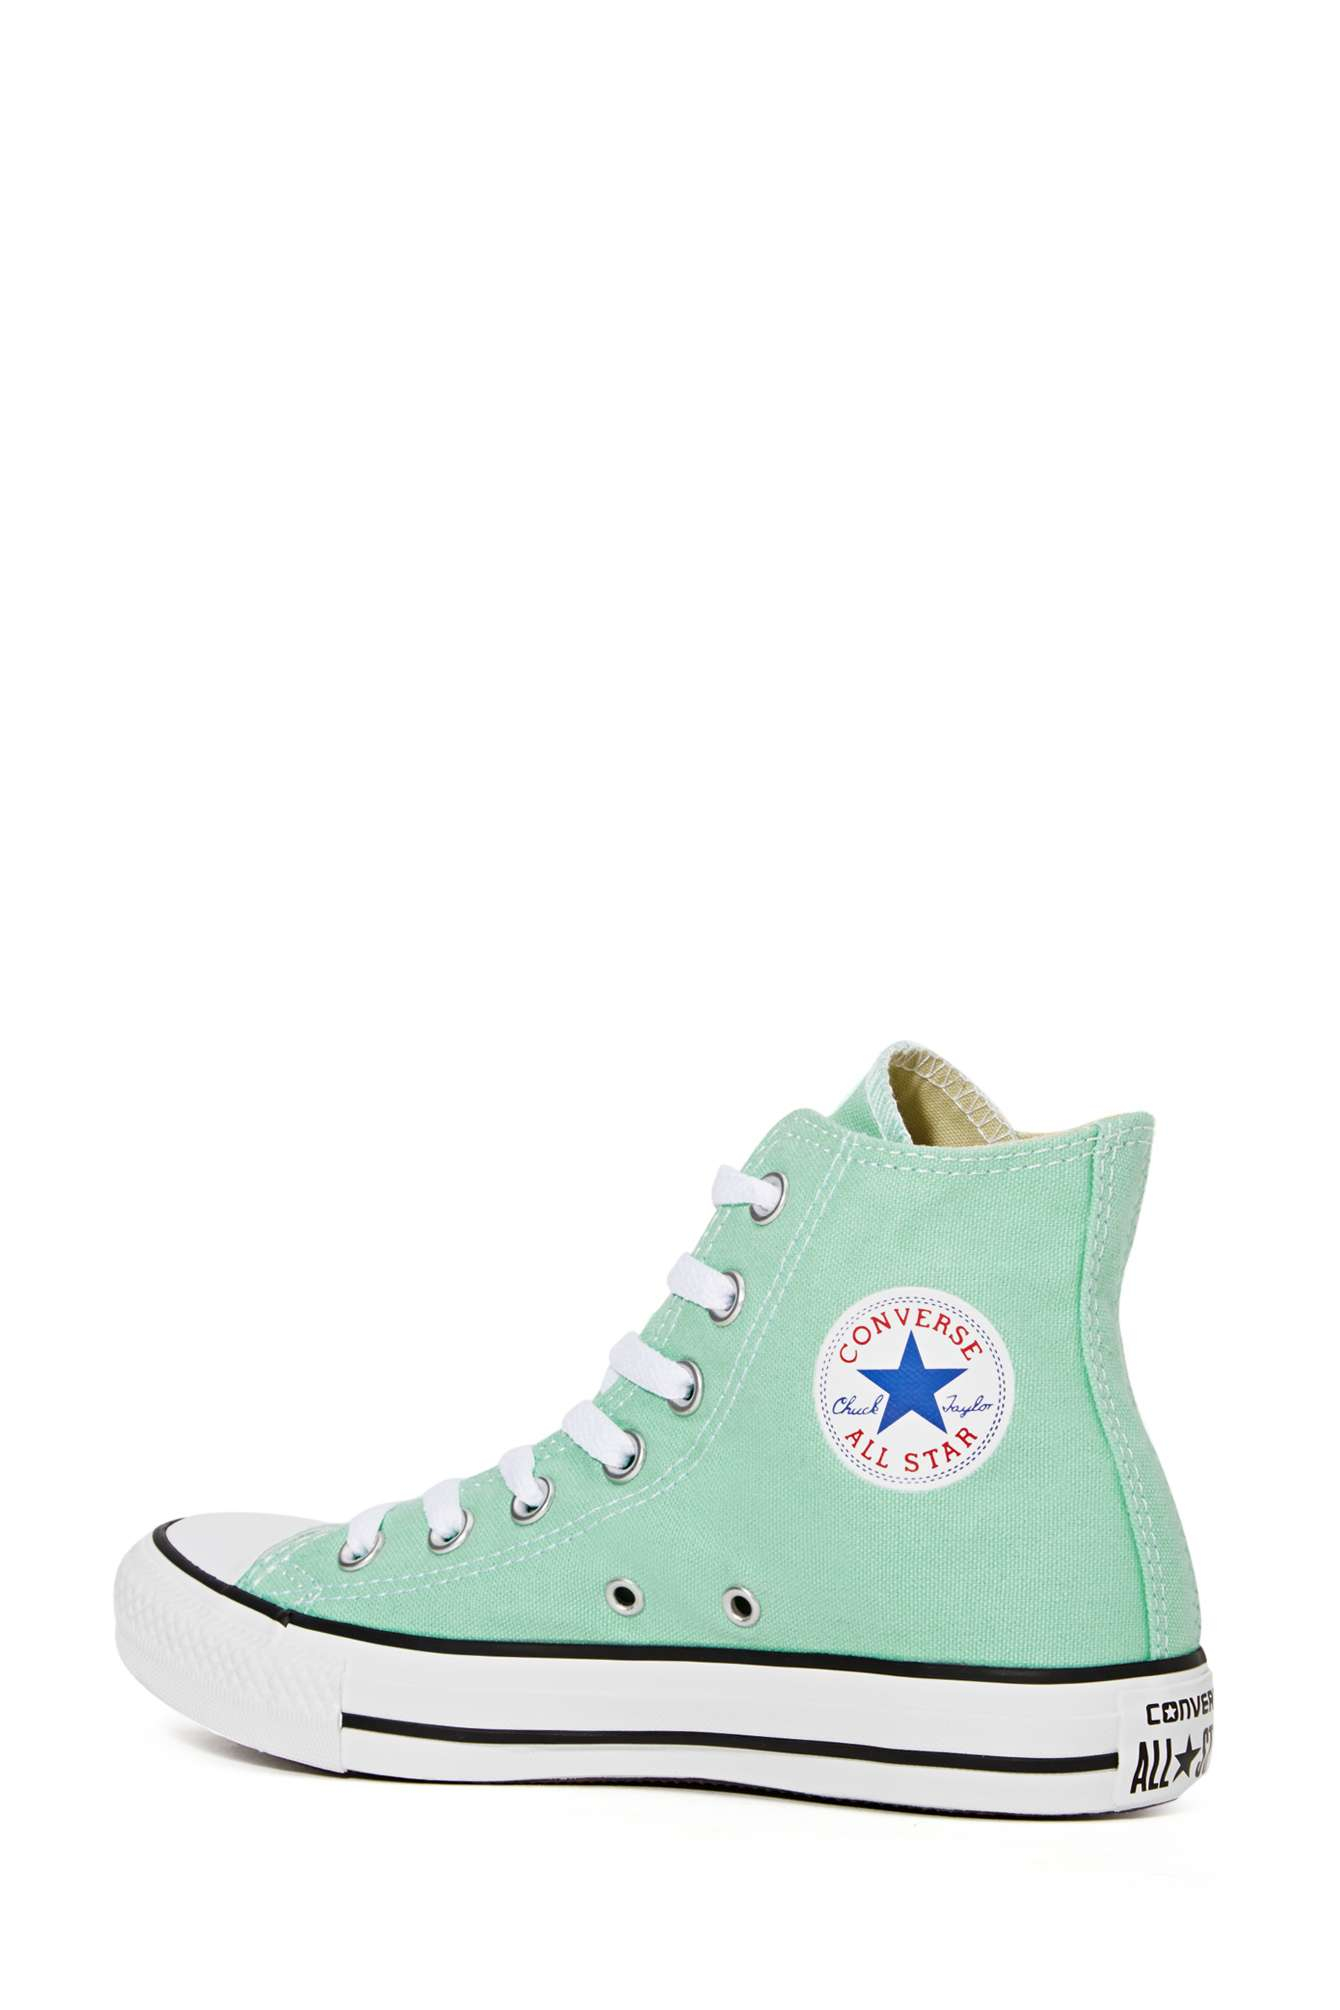 Converse Shoes For Babies Canada